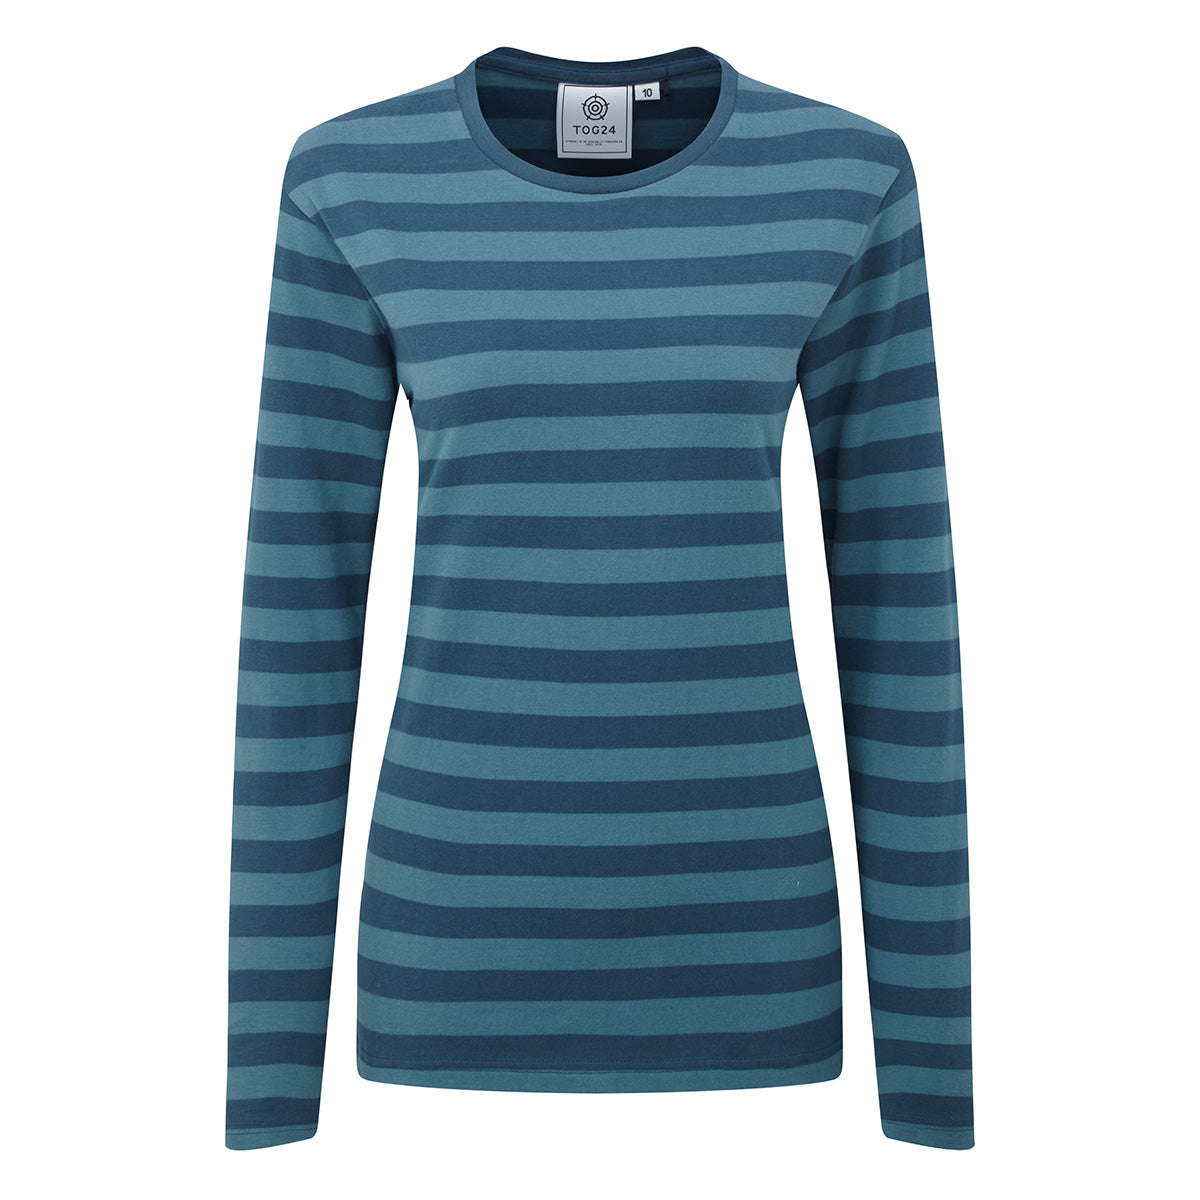 Sandsend Womens Long Sleeve Stripe T-Shirt - Atlantic Blue image 4